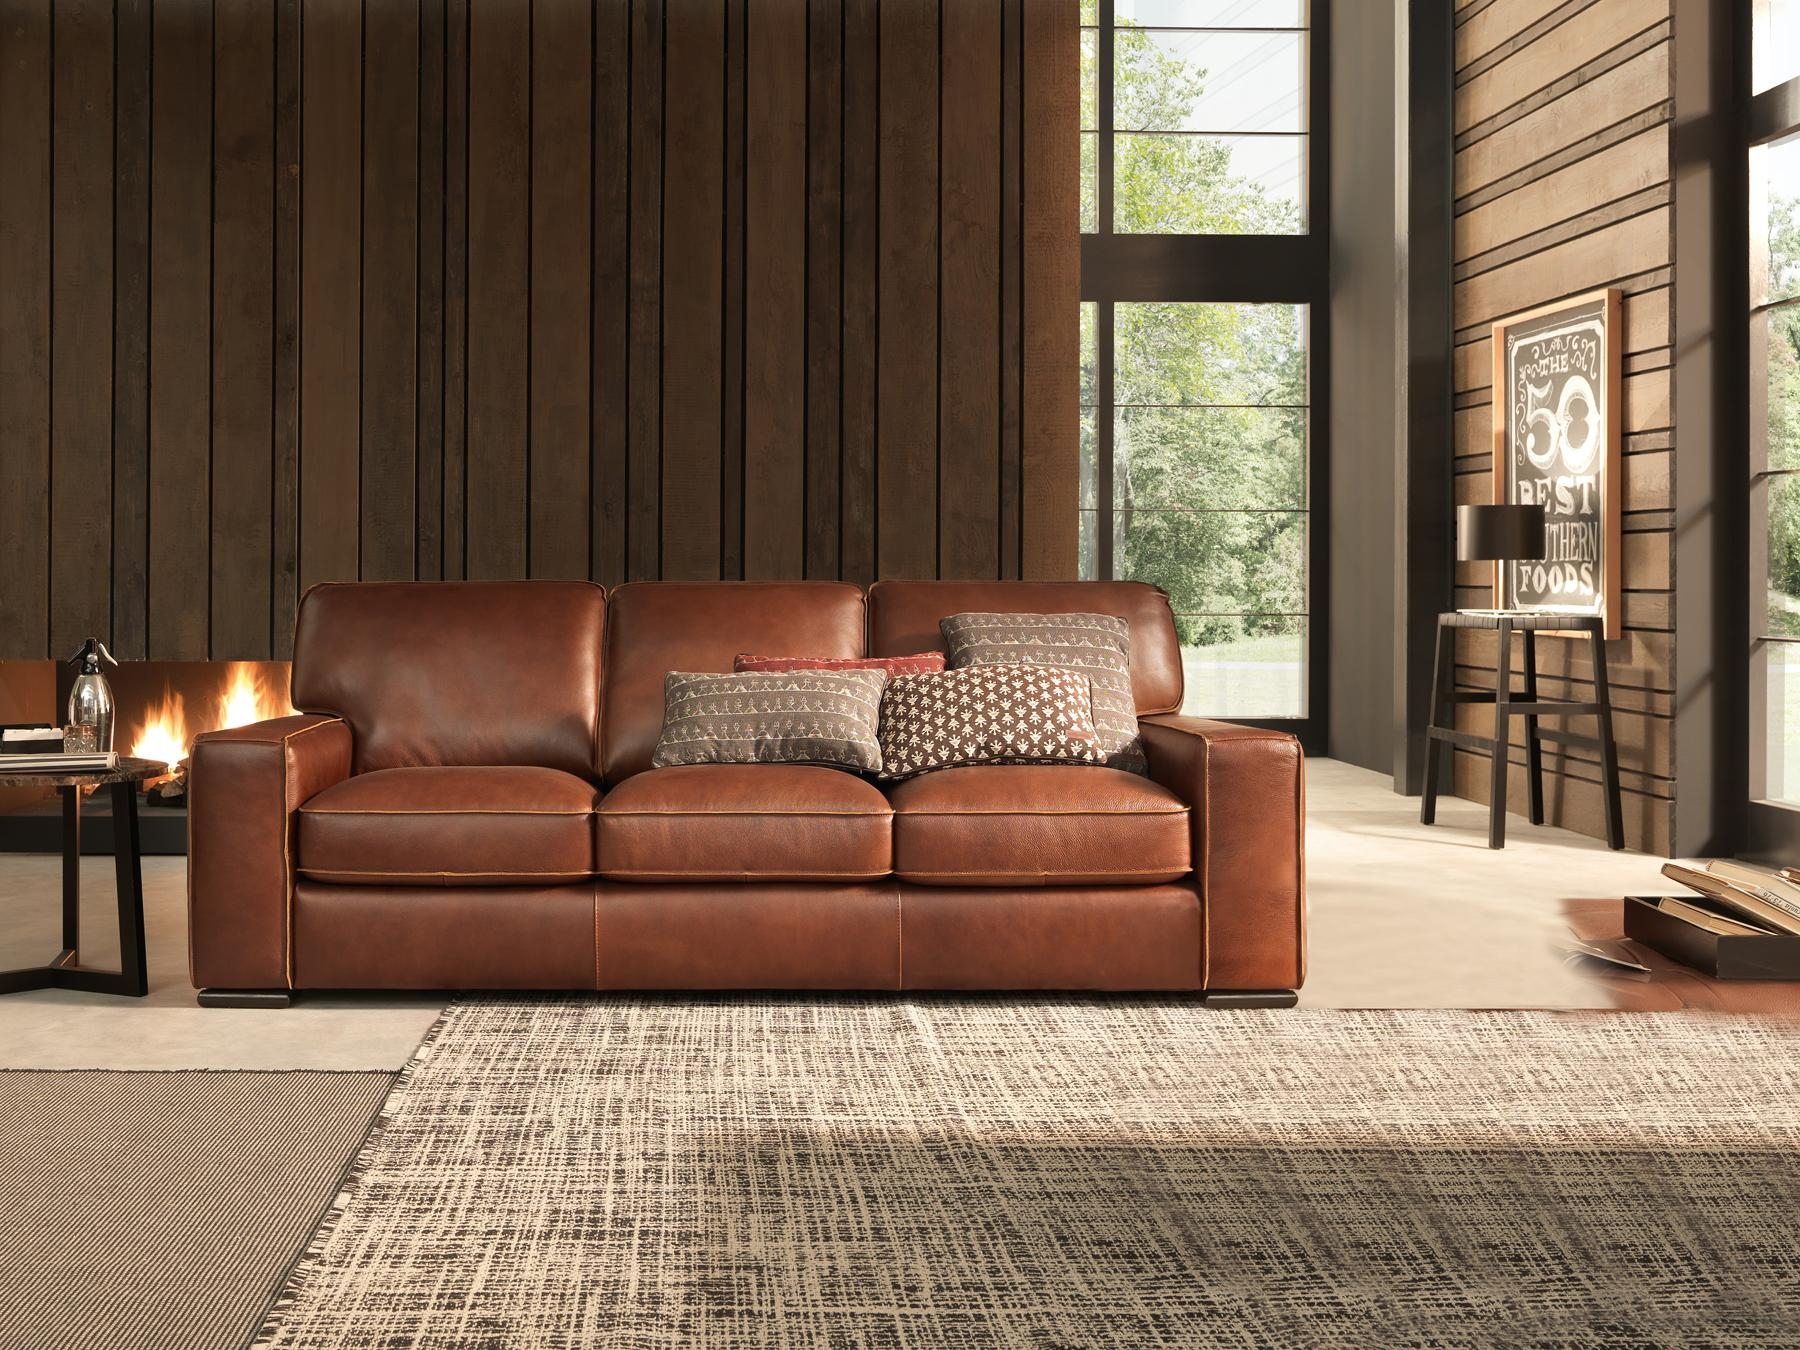 Natuzzi Italian Leather Sofa | Sofa Gallery | Kengire throughout Italian Leather Sofas